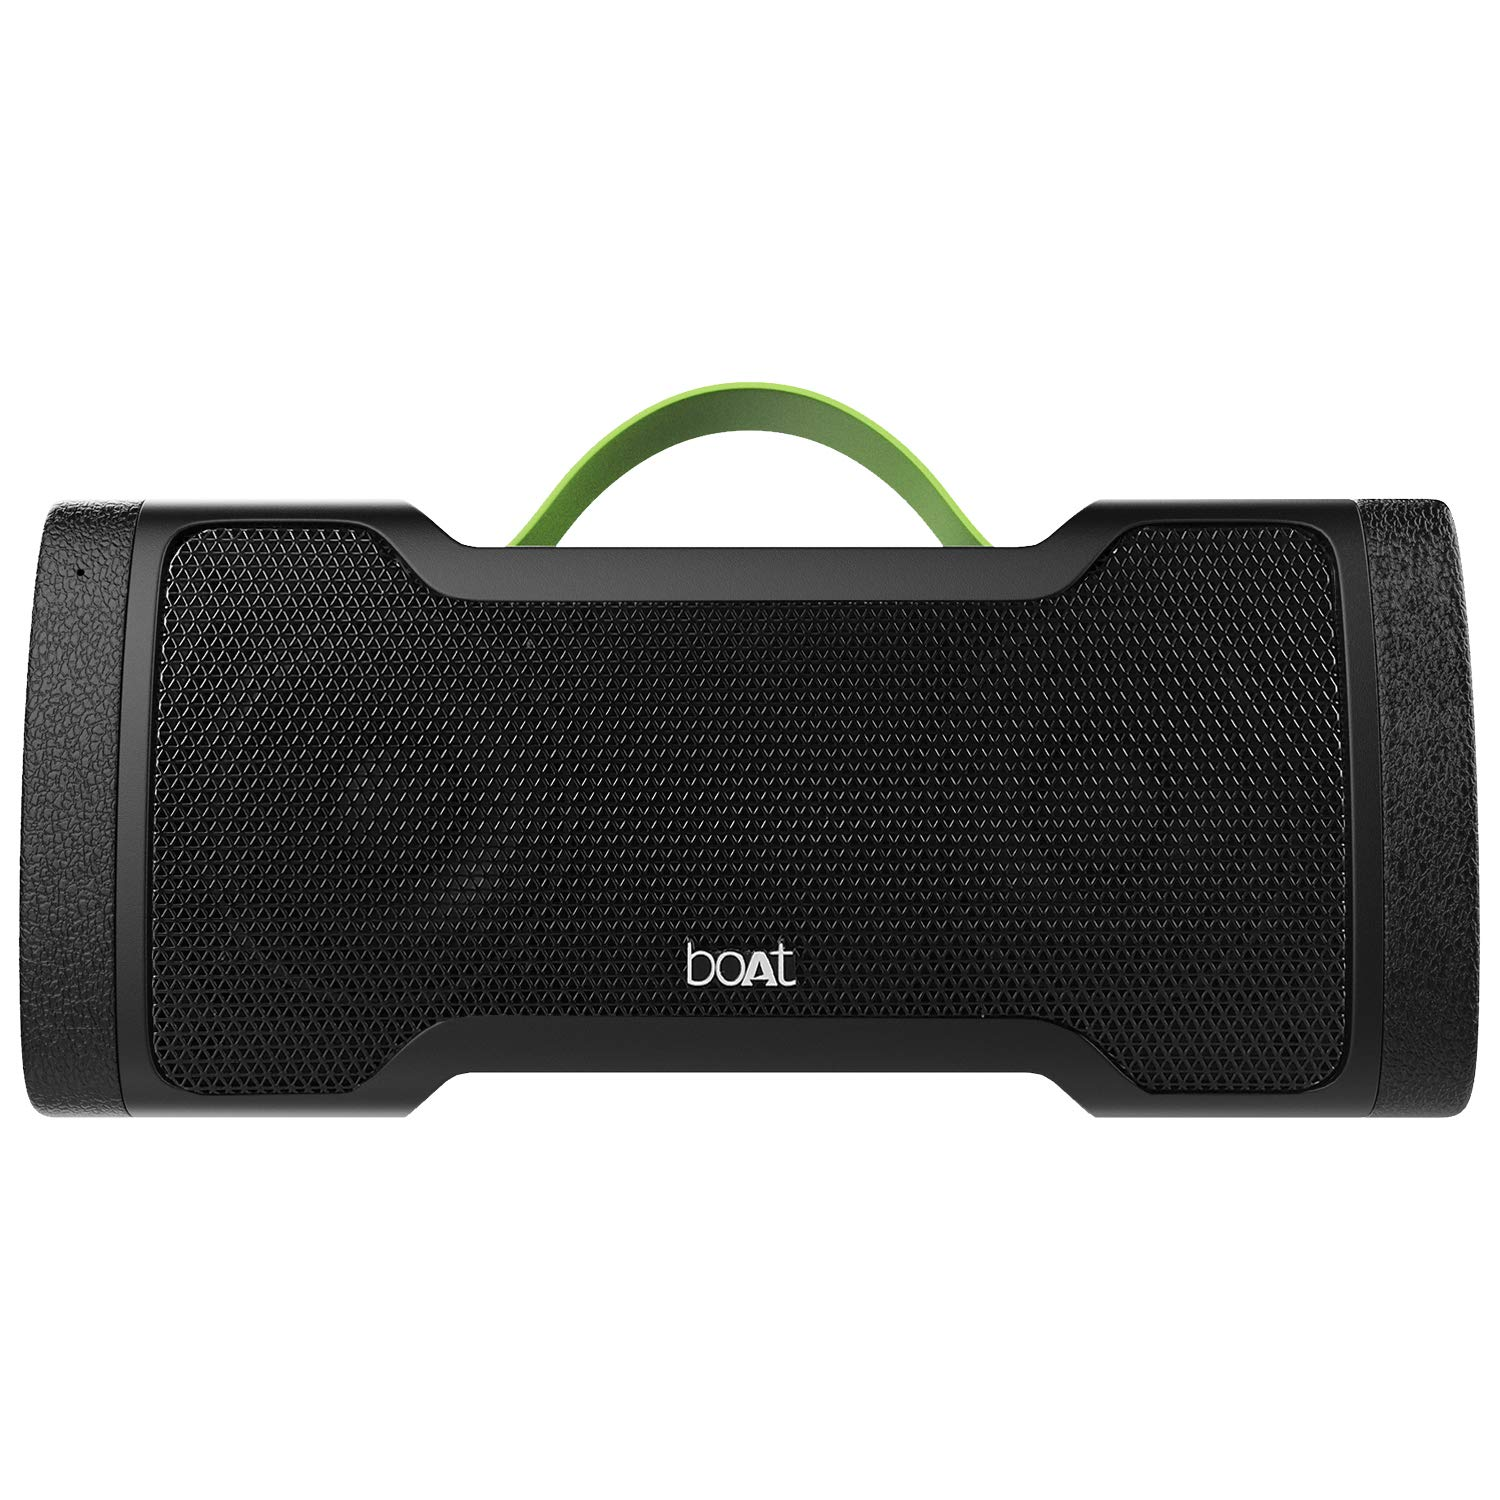 boat stone 1000 speakers review